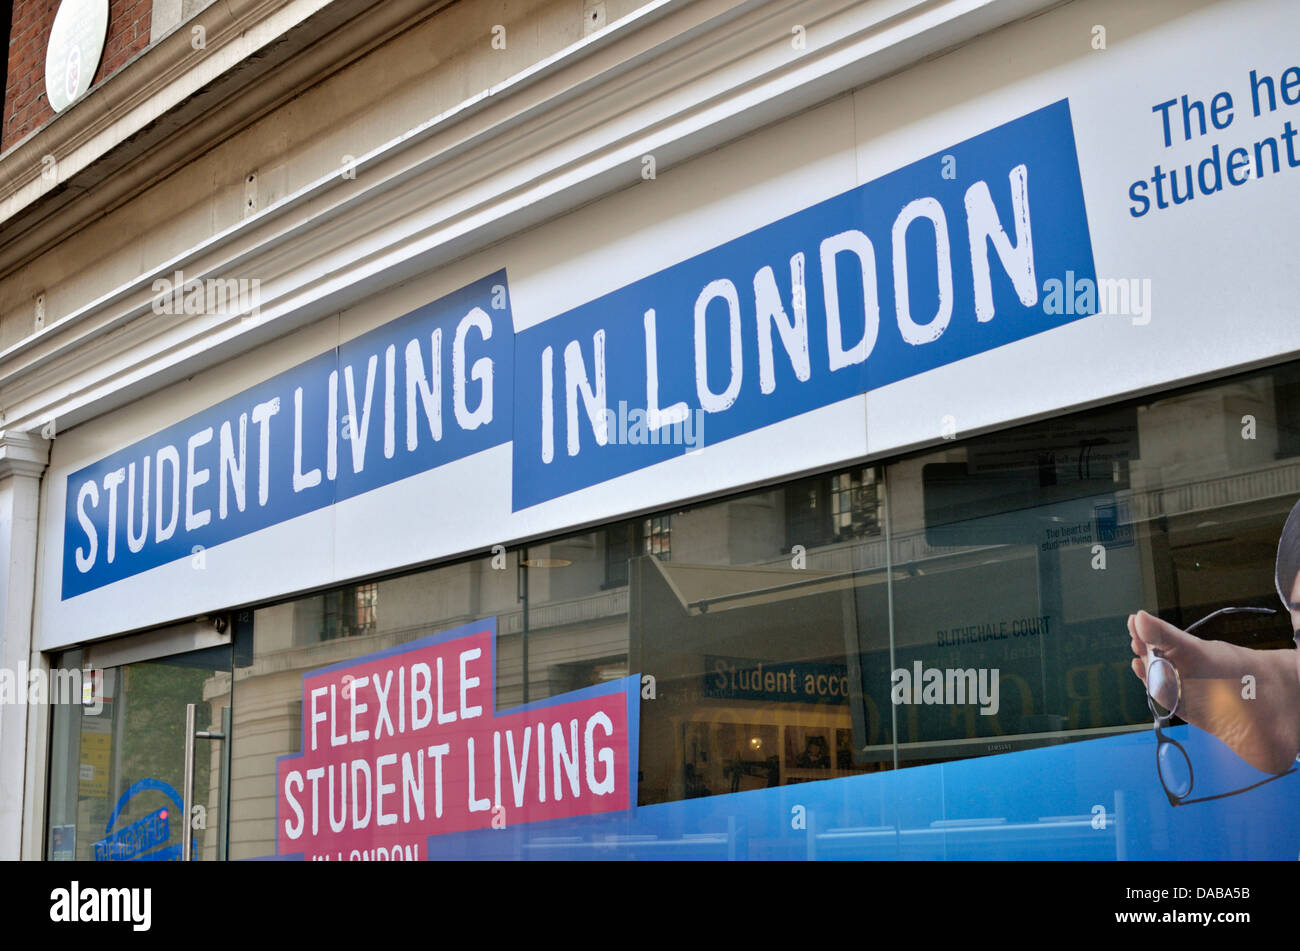 Unite Student Living in London letting agent in Southampton Row, Bloomsbury, London, UK - Stock Image